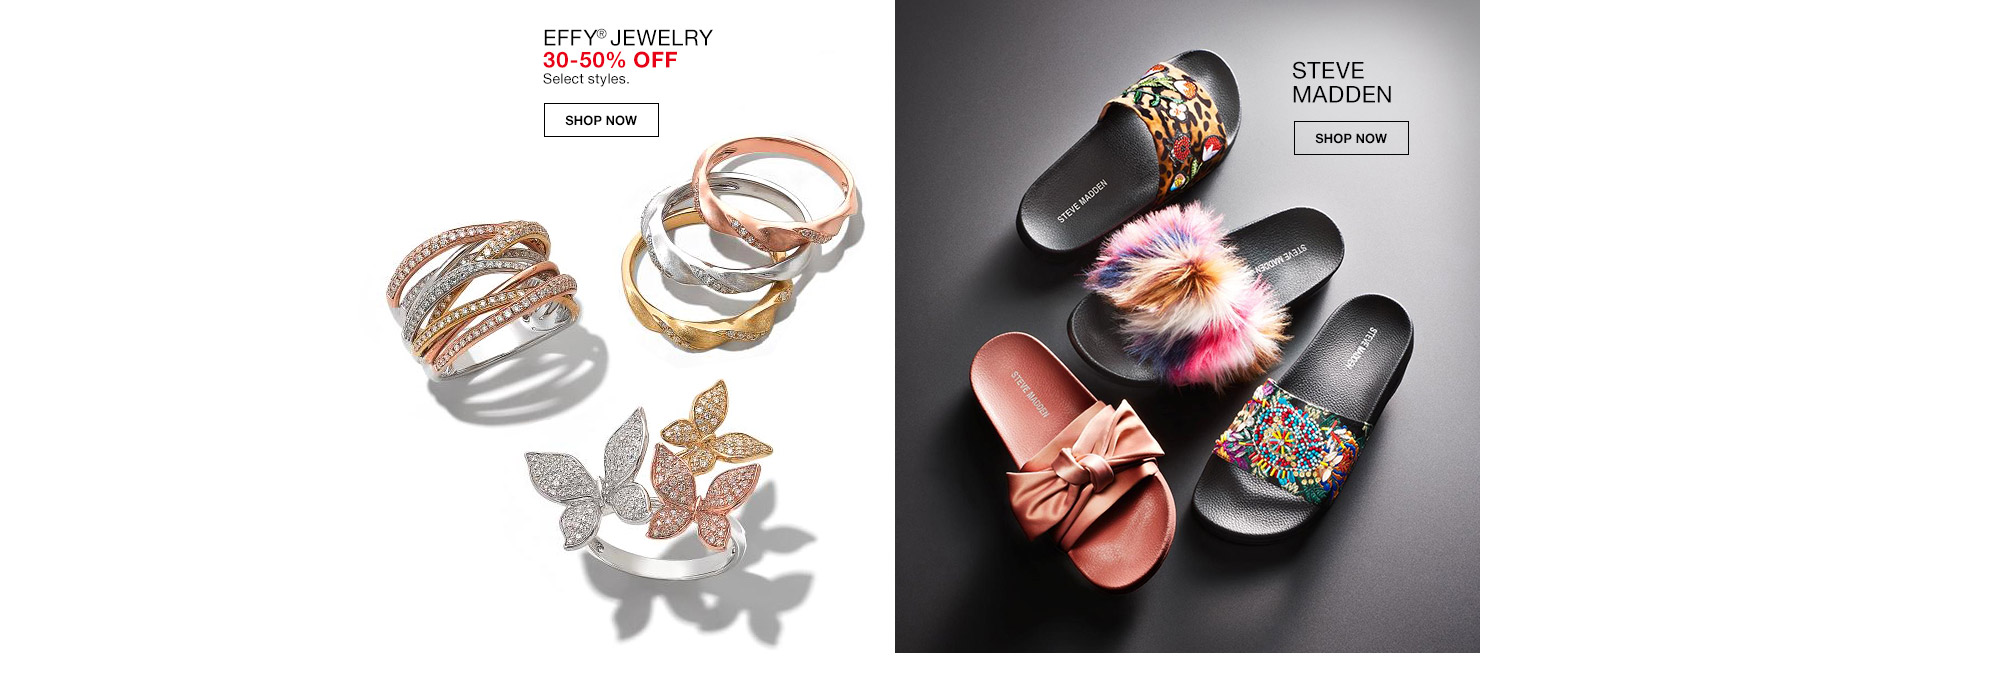 effy jewelry 30 percent to 50 percent off. select styles. steve madden.